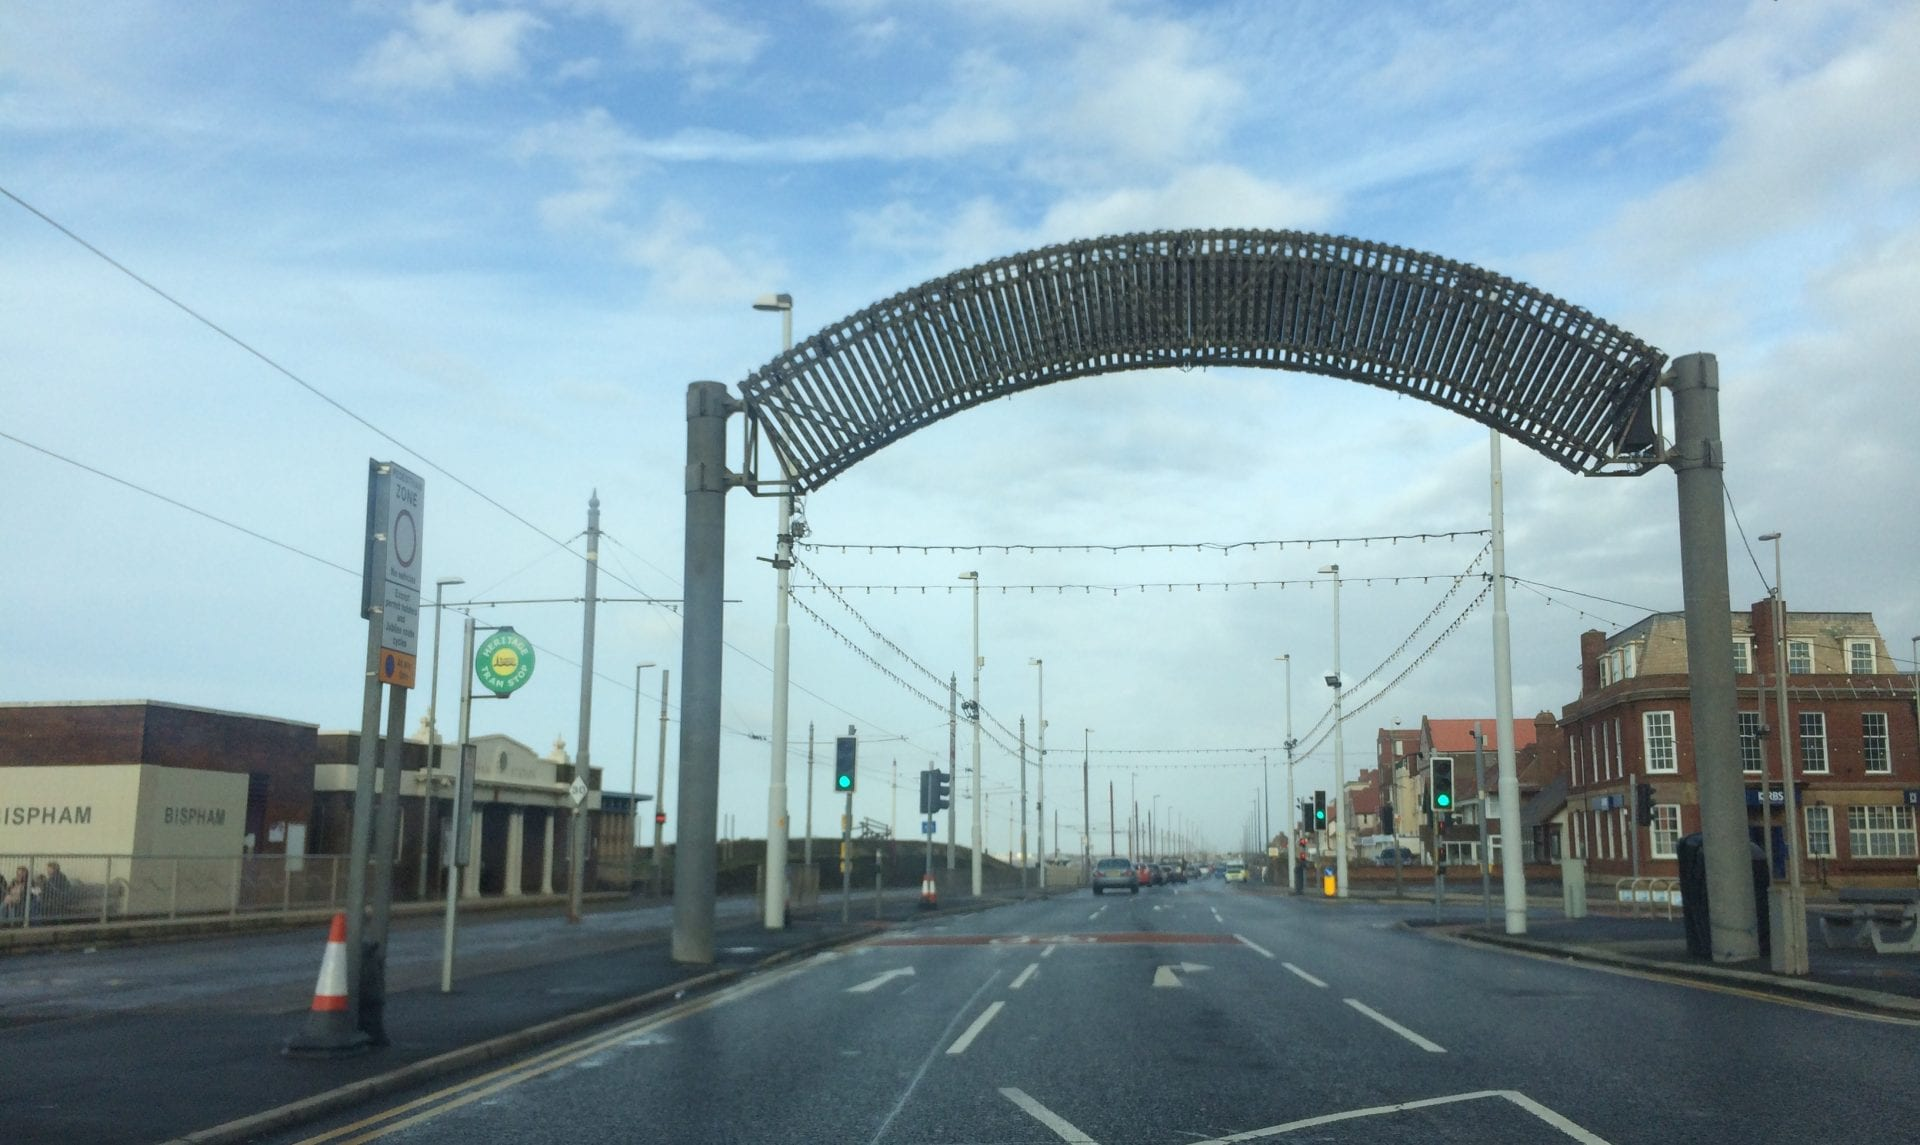 Illuminations welcome arch at Bispham, Blackpool North Shore